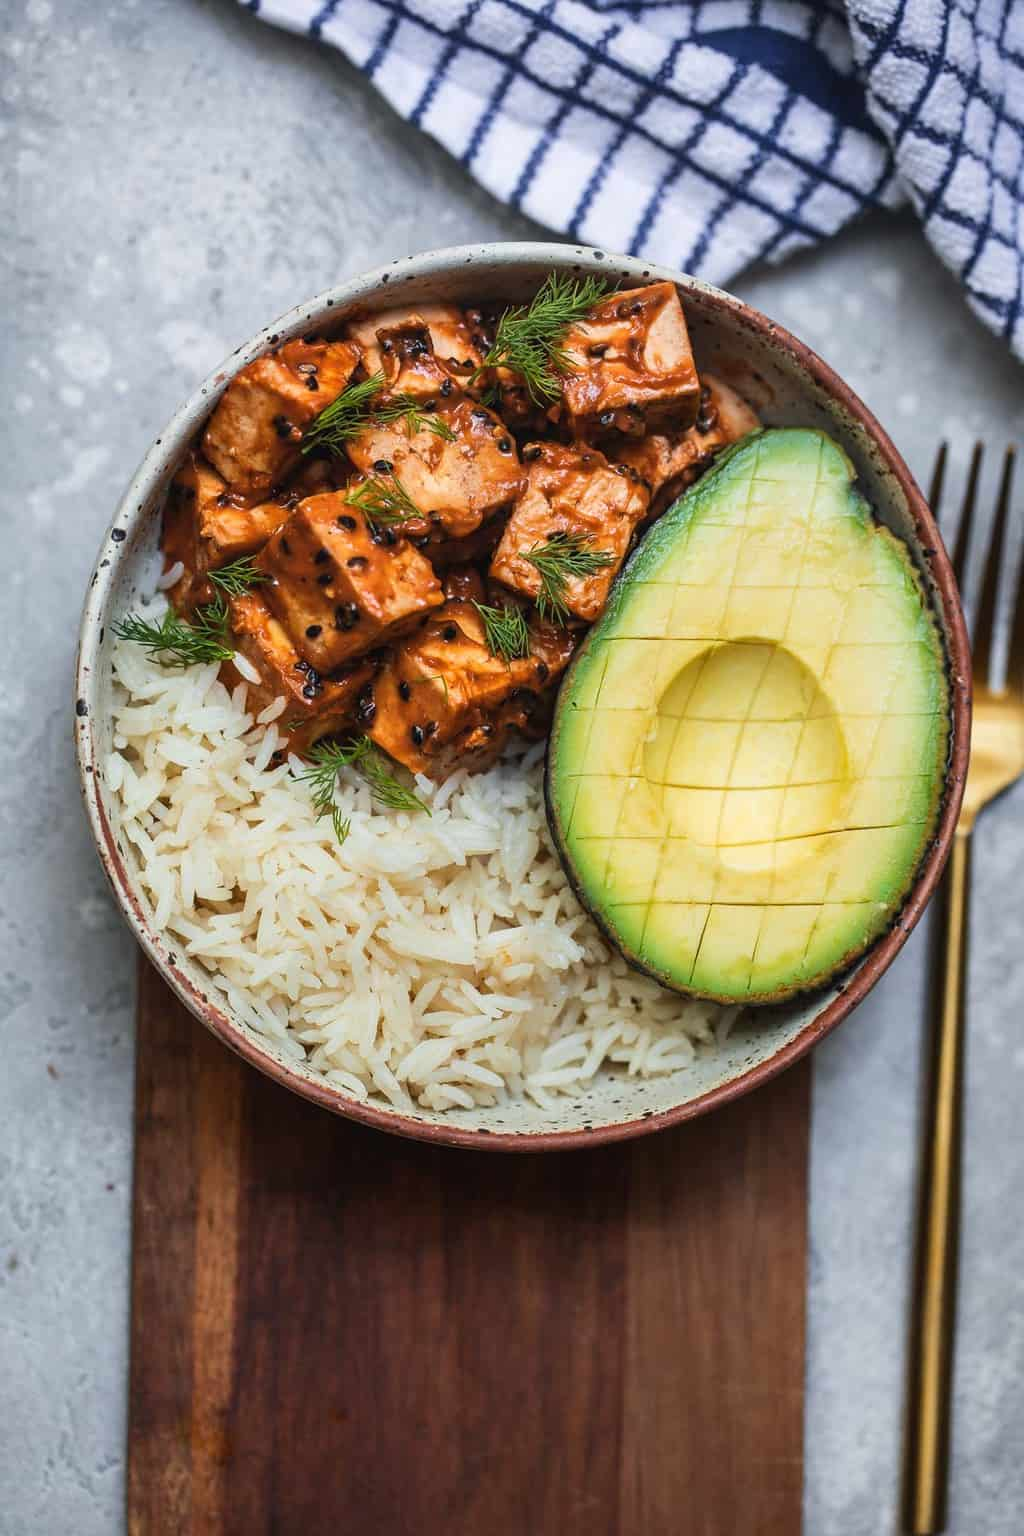 Bowl with peanut tofu rice and avocado